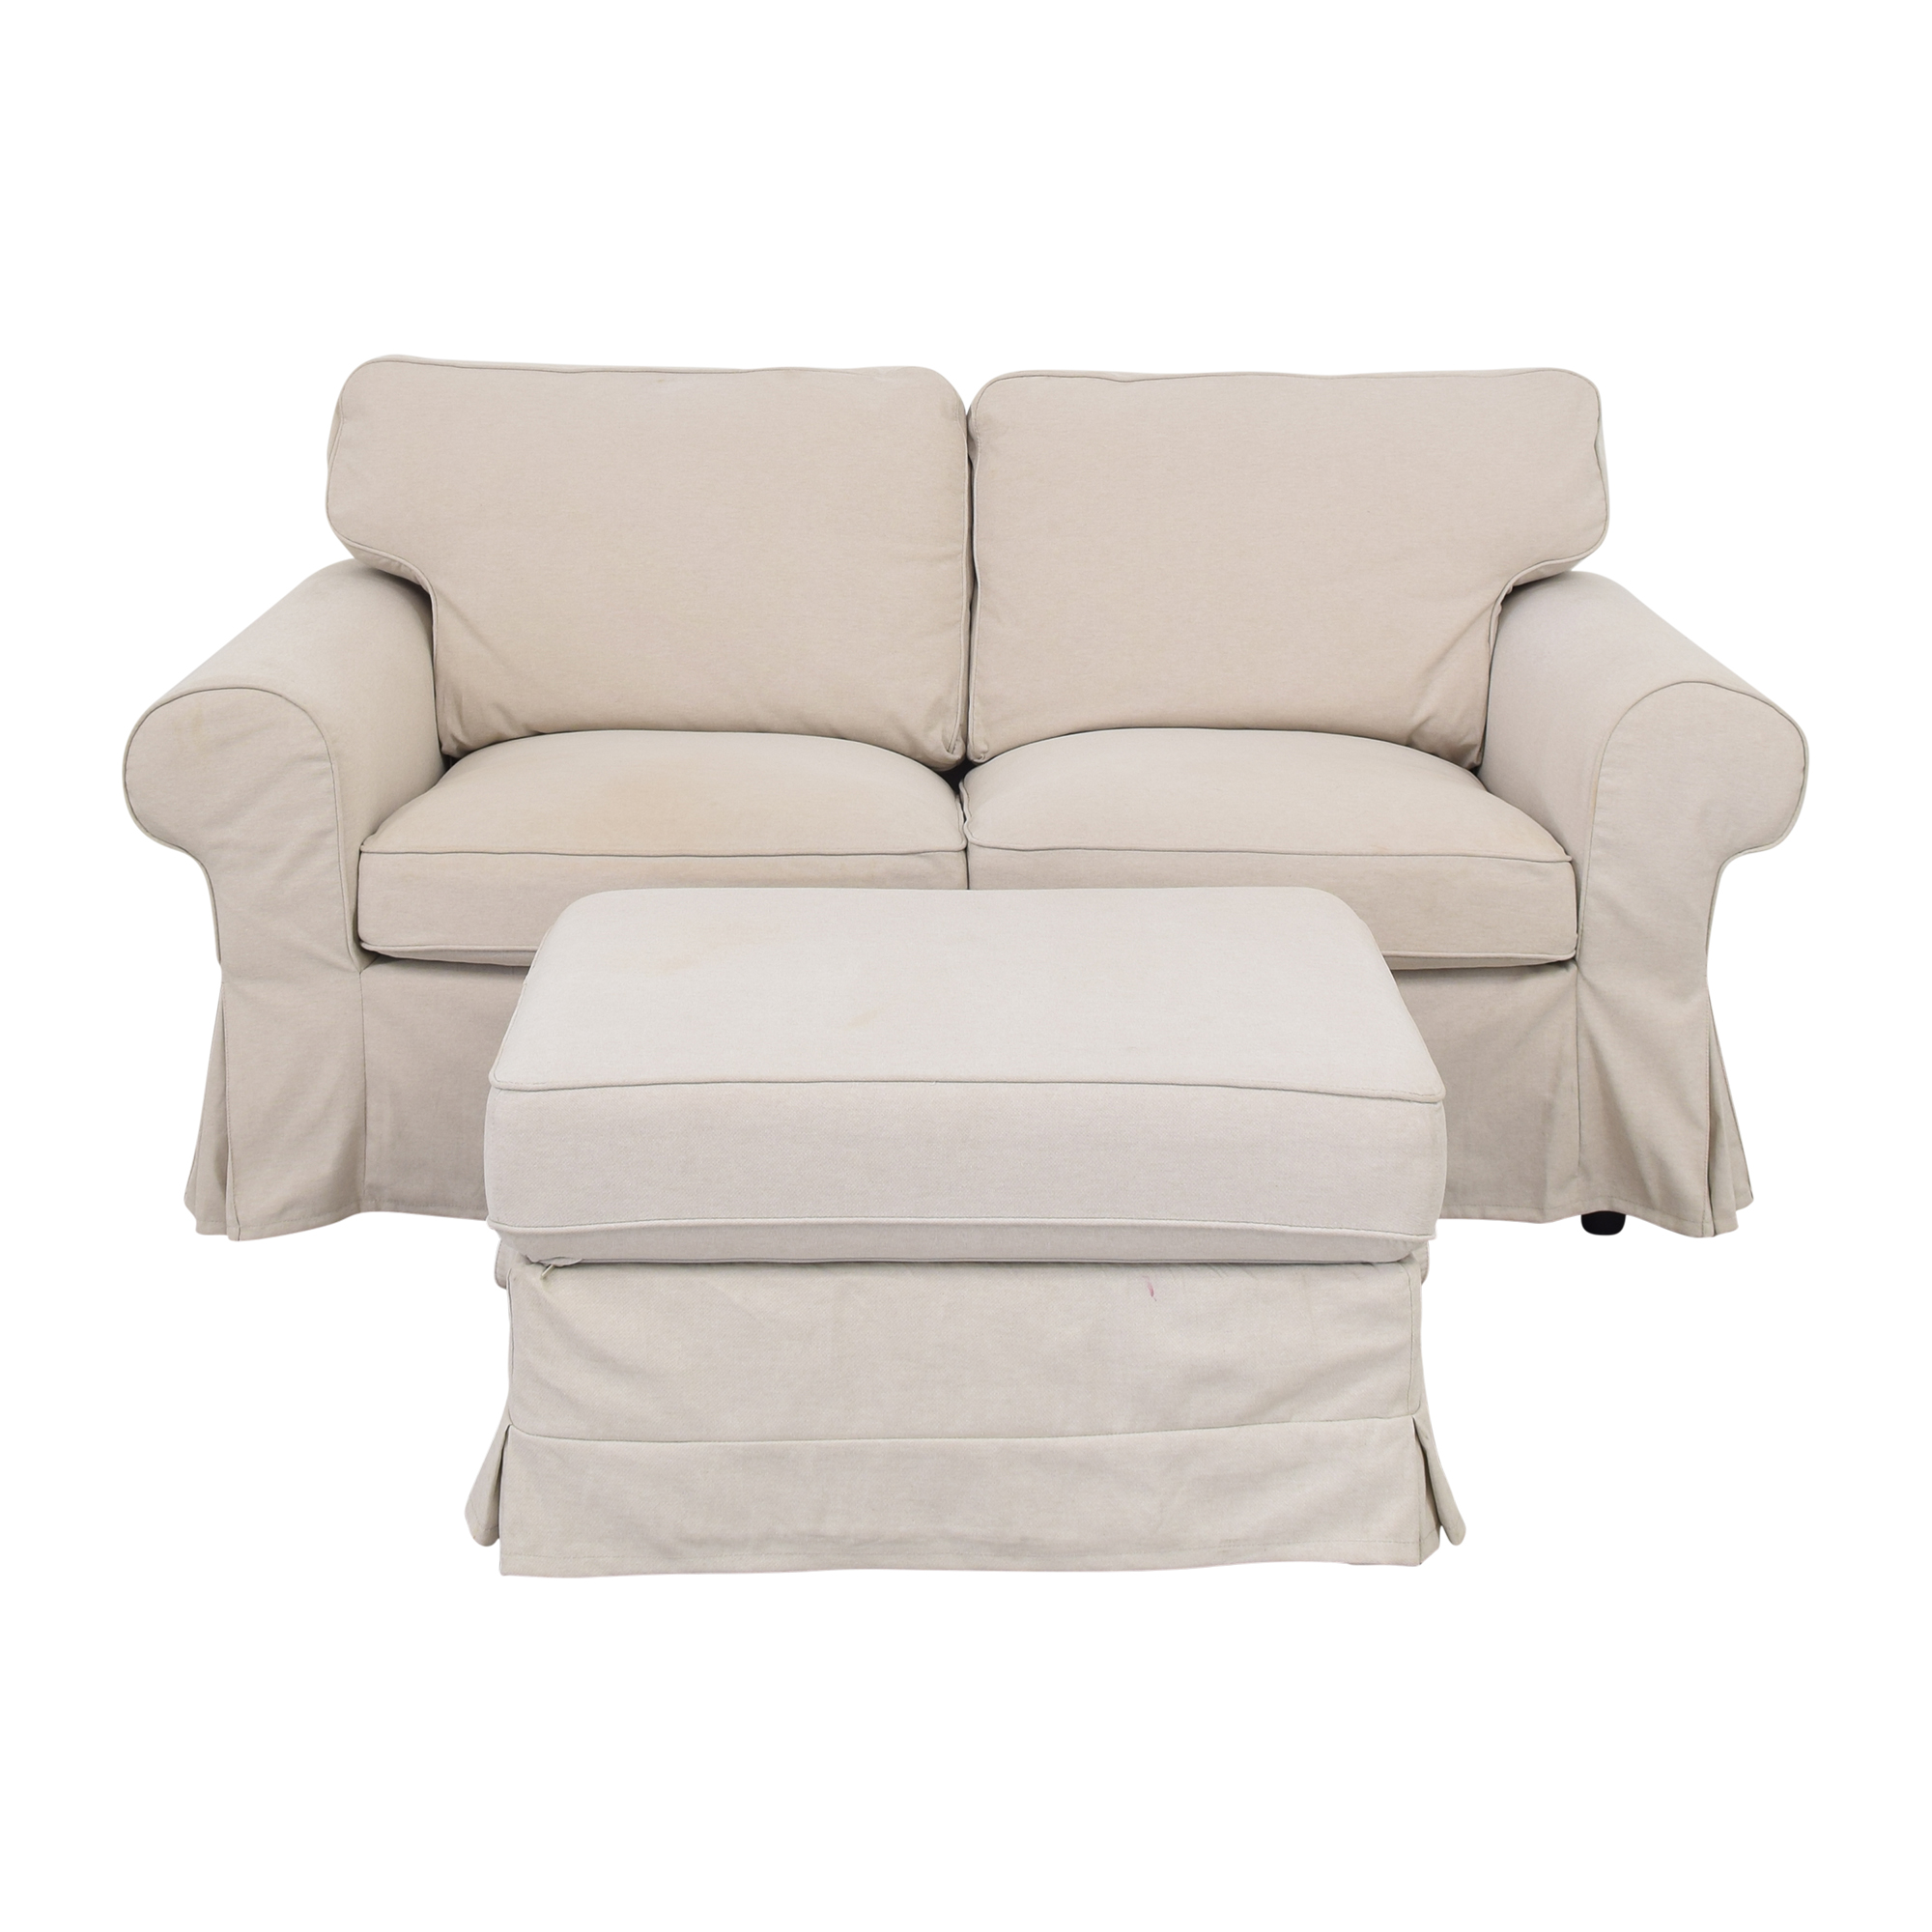 IKEA IKEA Ektorp Loveseat with Ottoman used